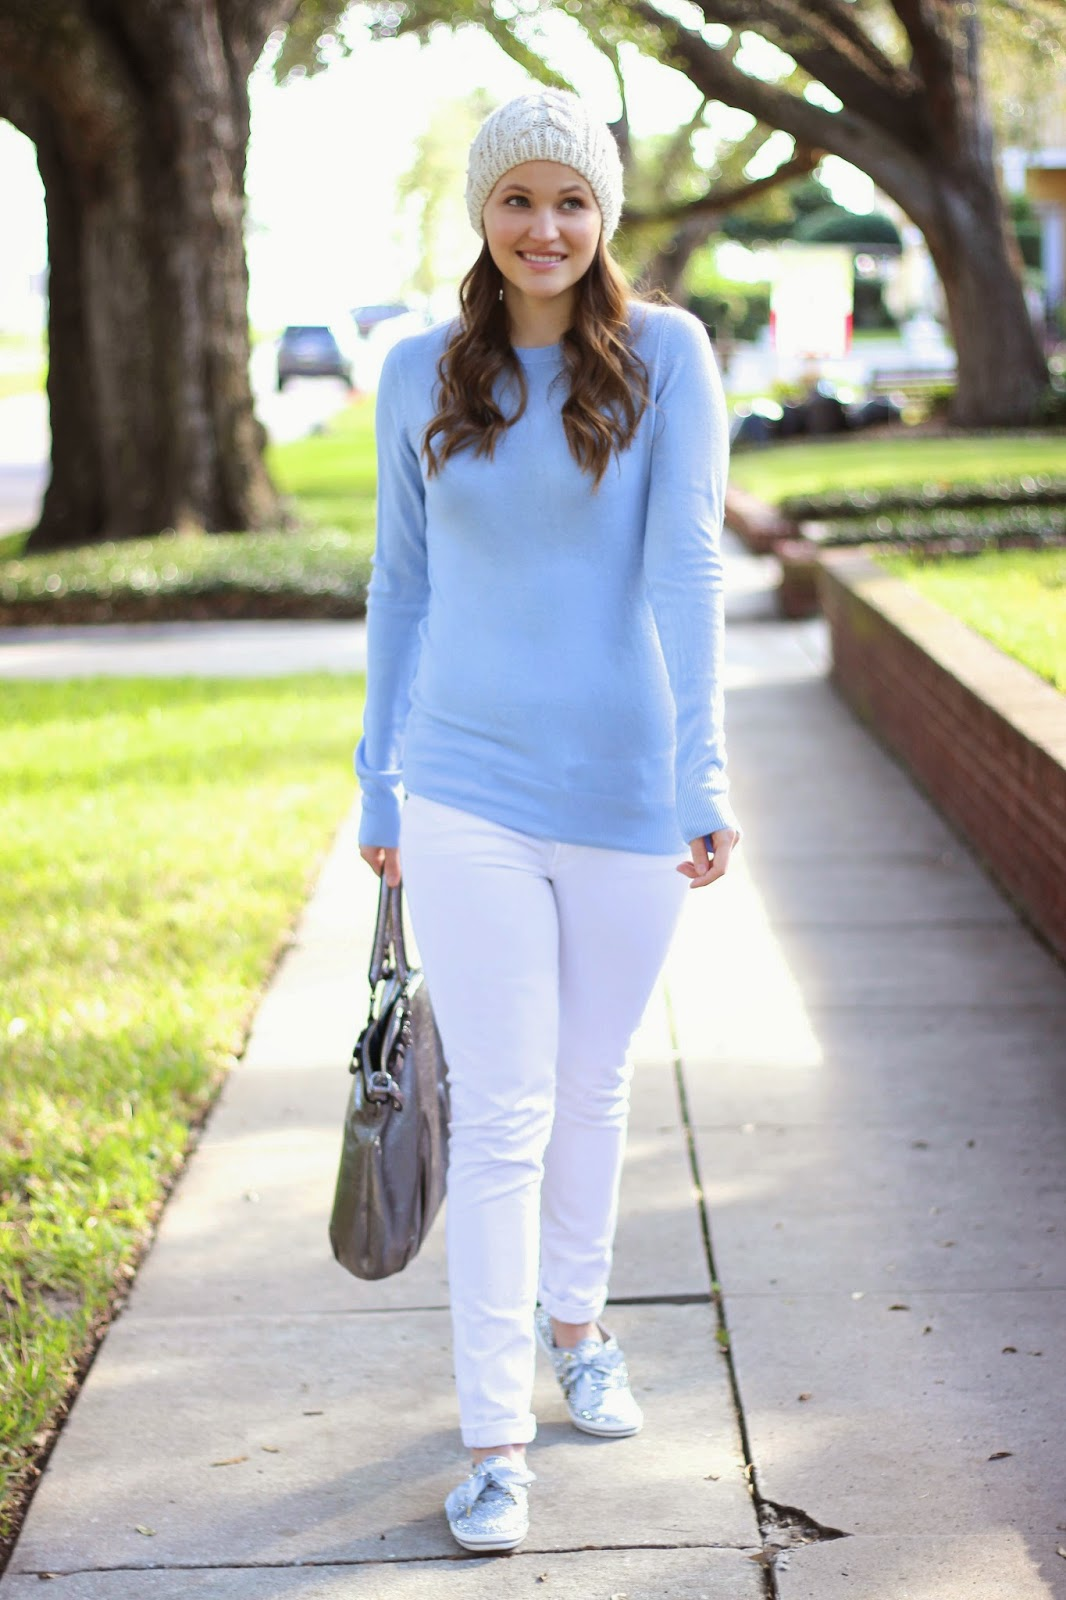 Kelly Elizabeth Style: Icy Blue Sweater